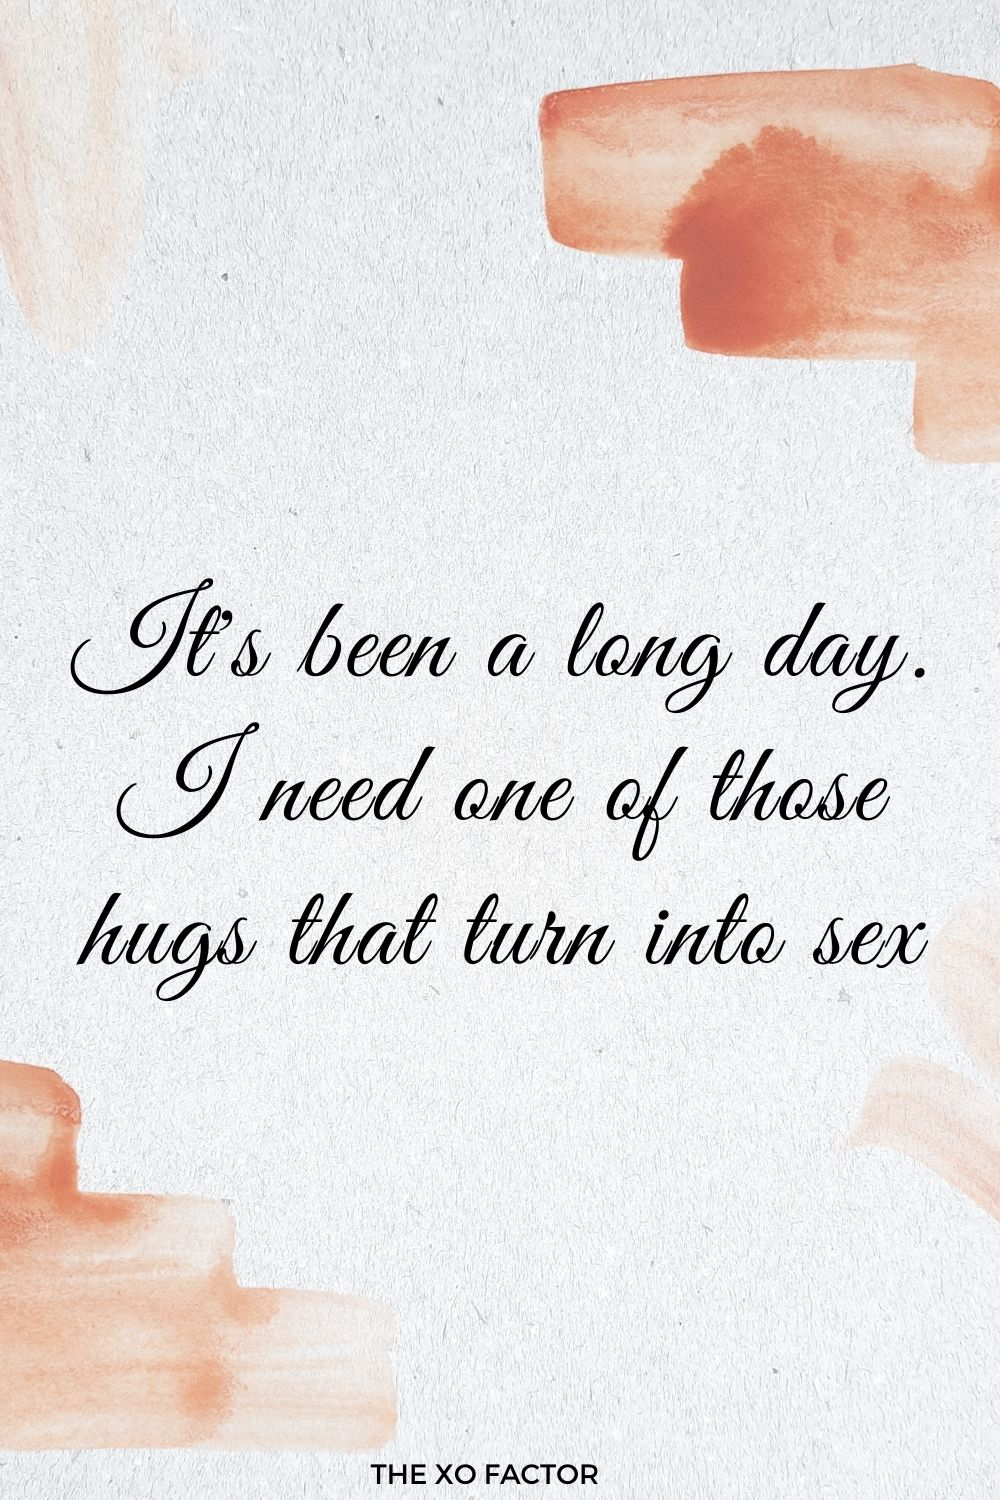 It's been a long day. I need one of those hugs that turn into sex